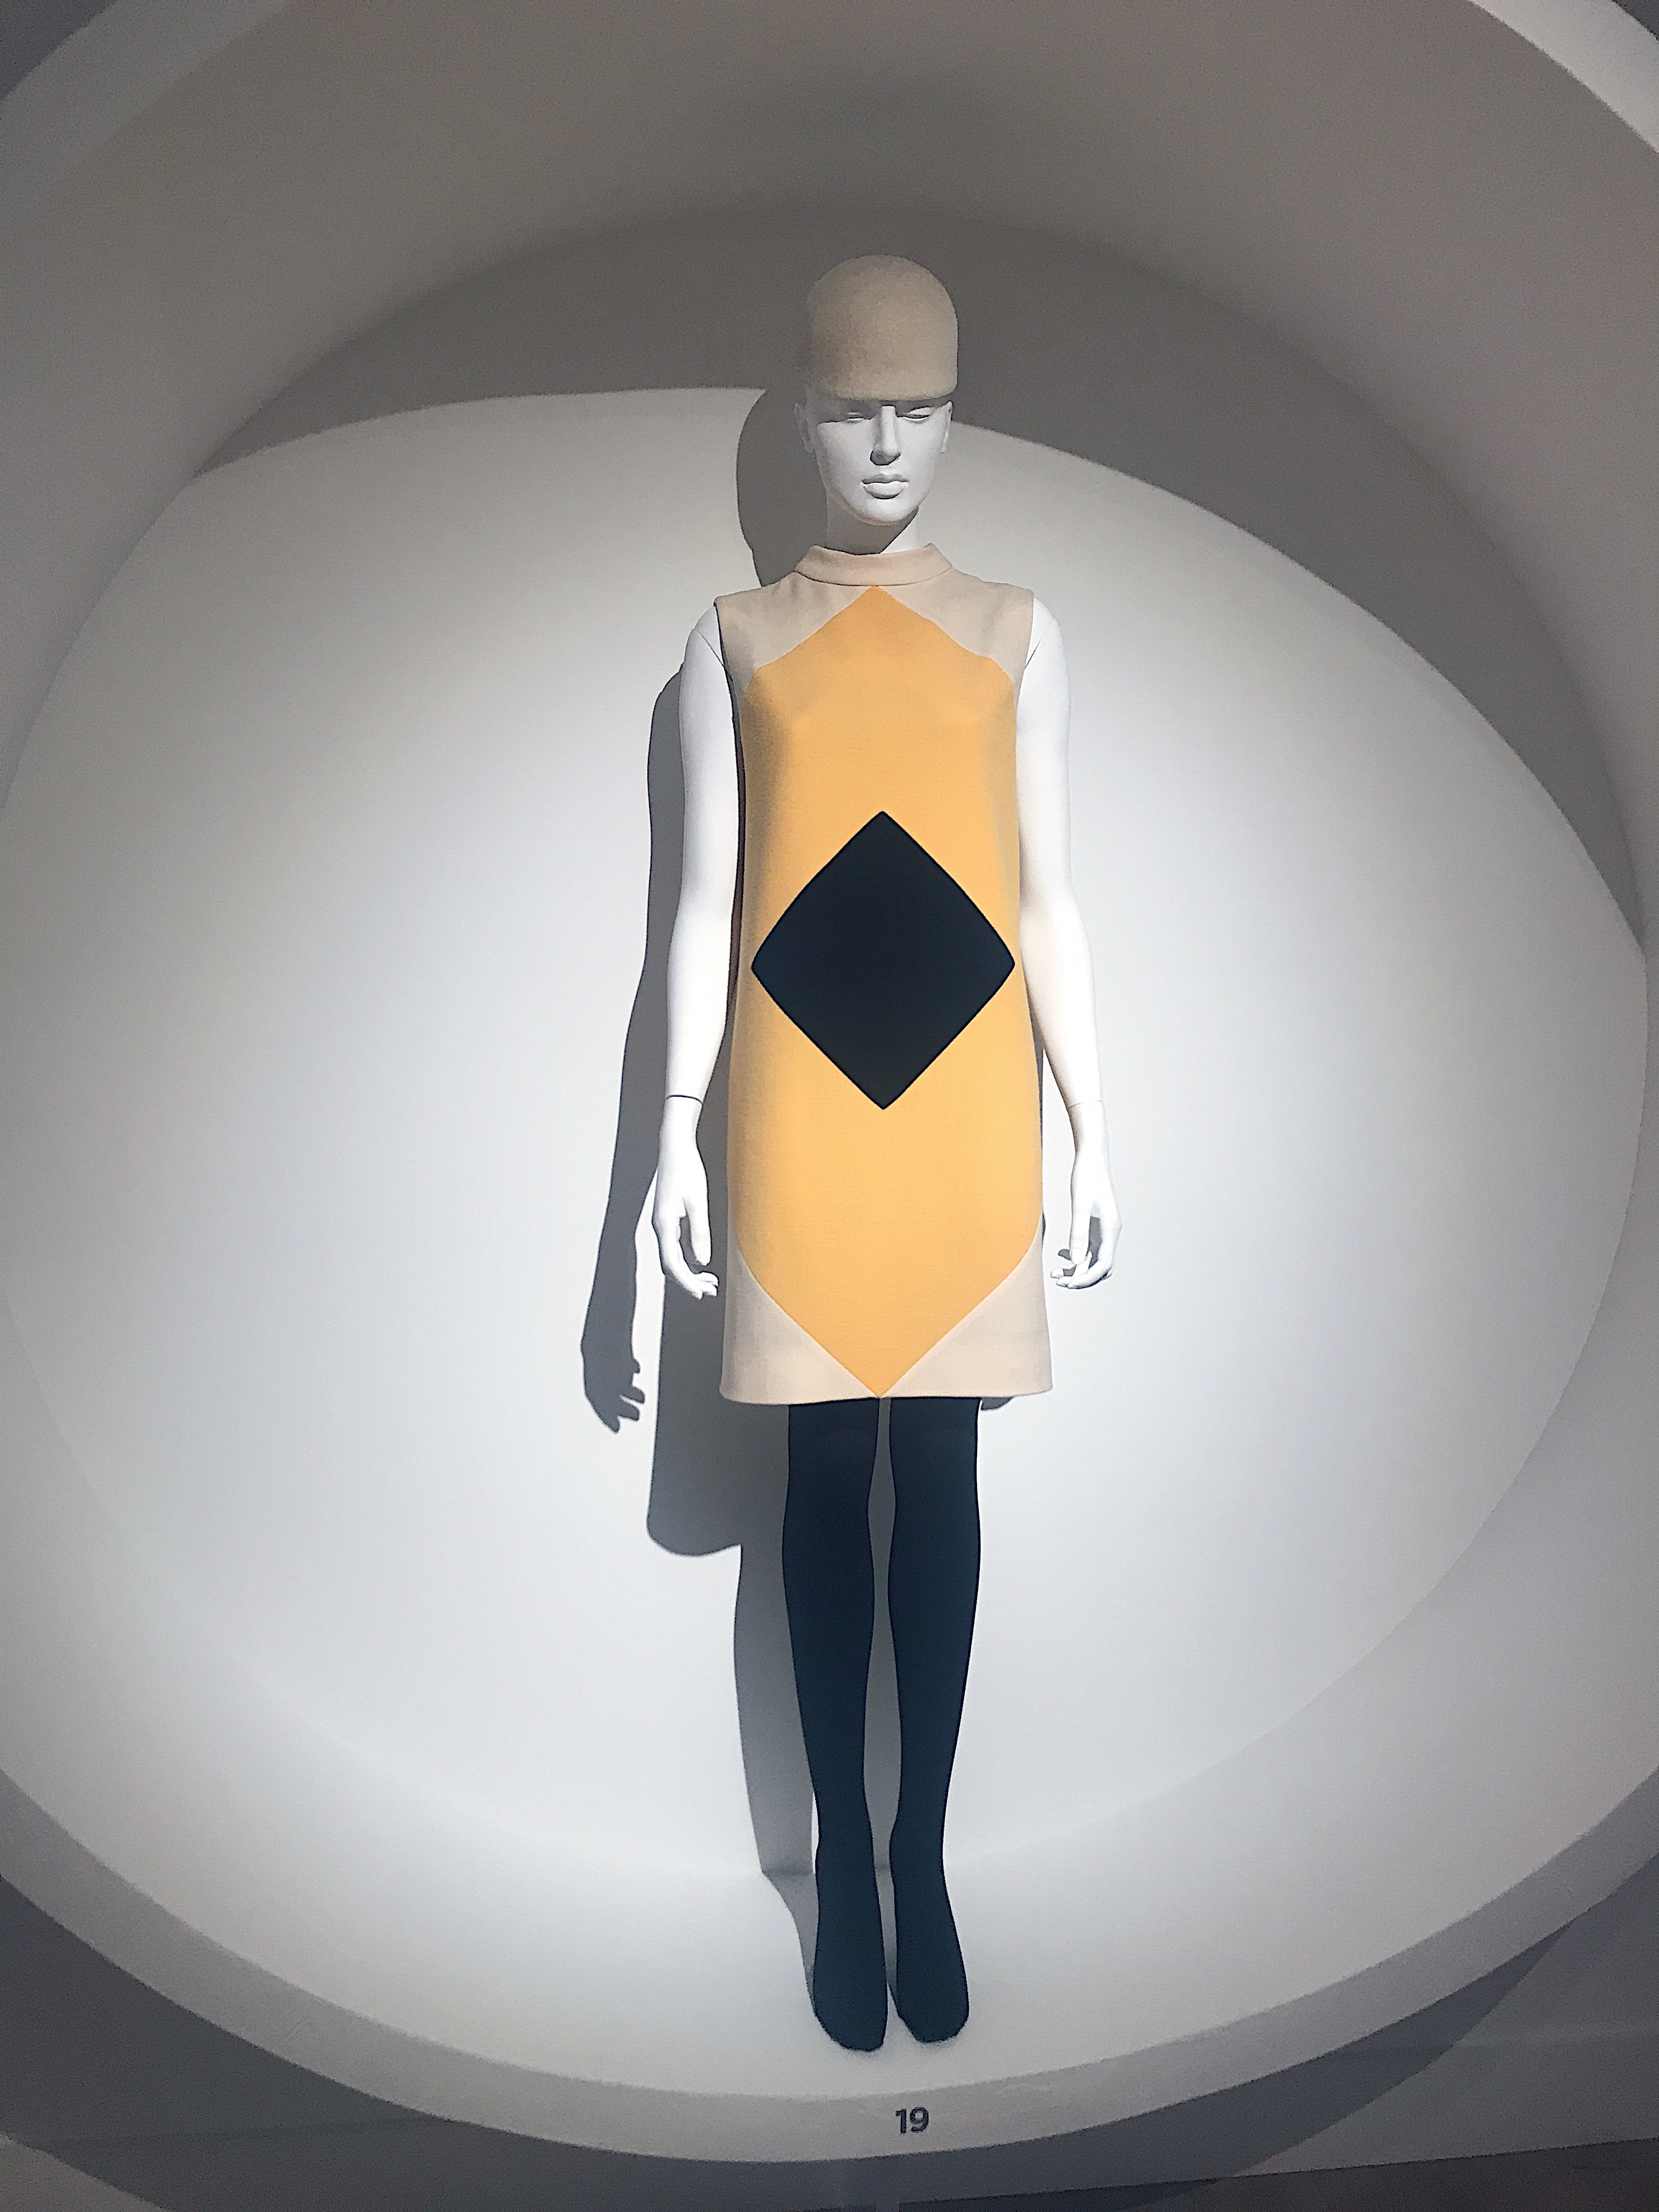 SCADFash Presents Pierre Cardin 'Pursuit of the Future' March 27- September 30th